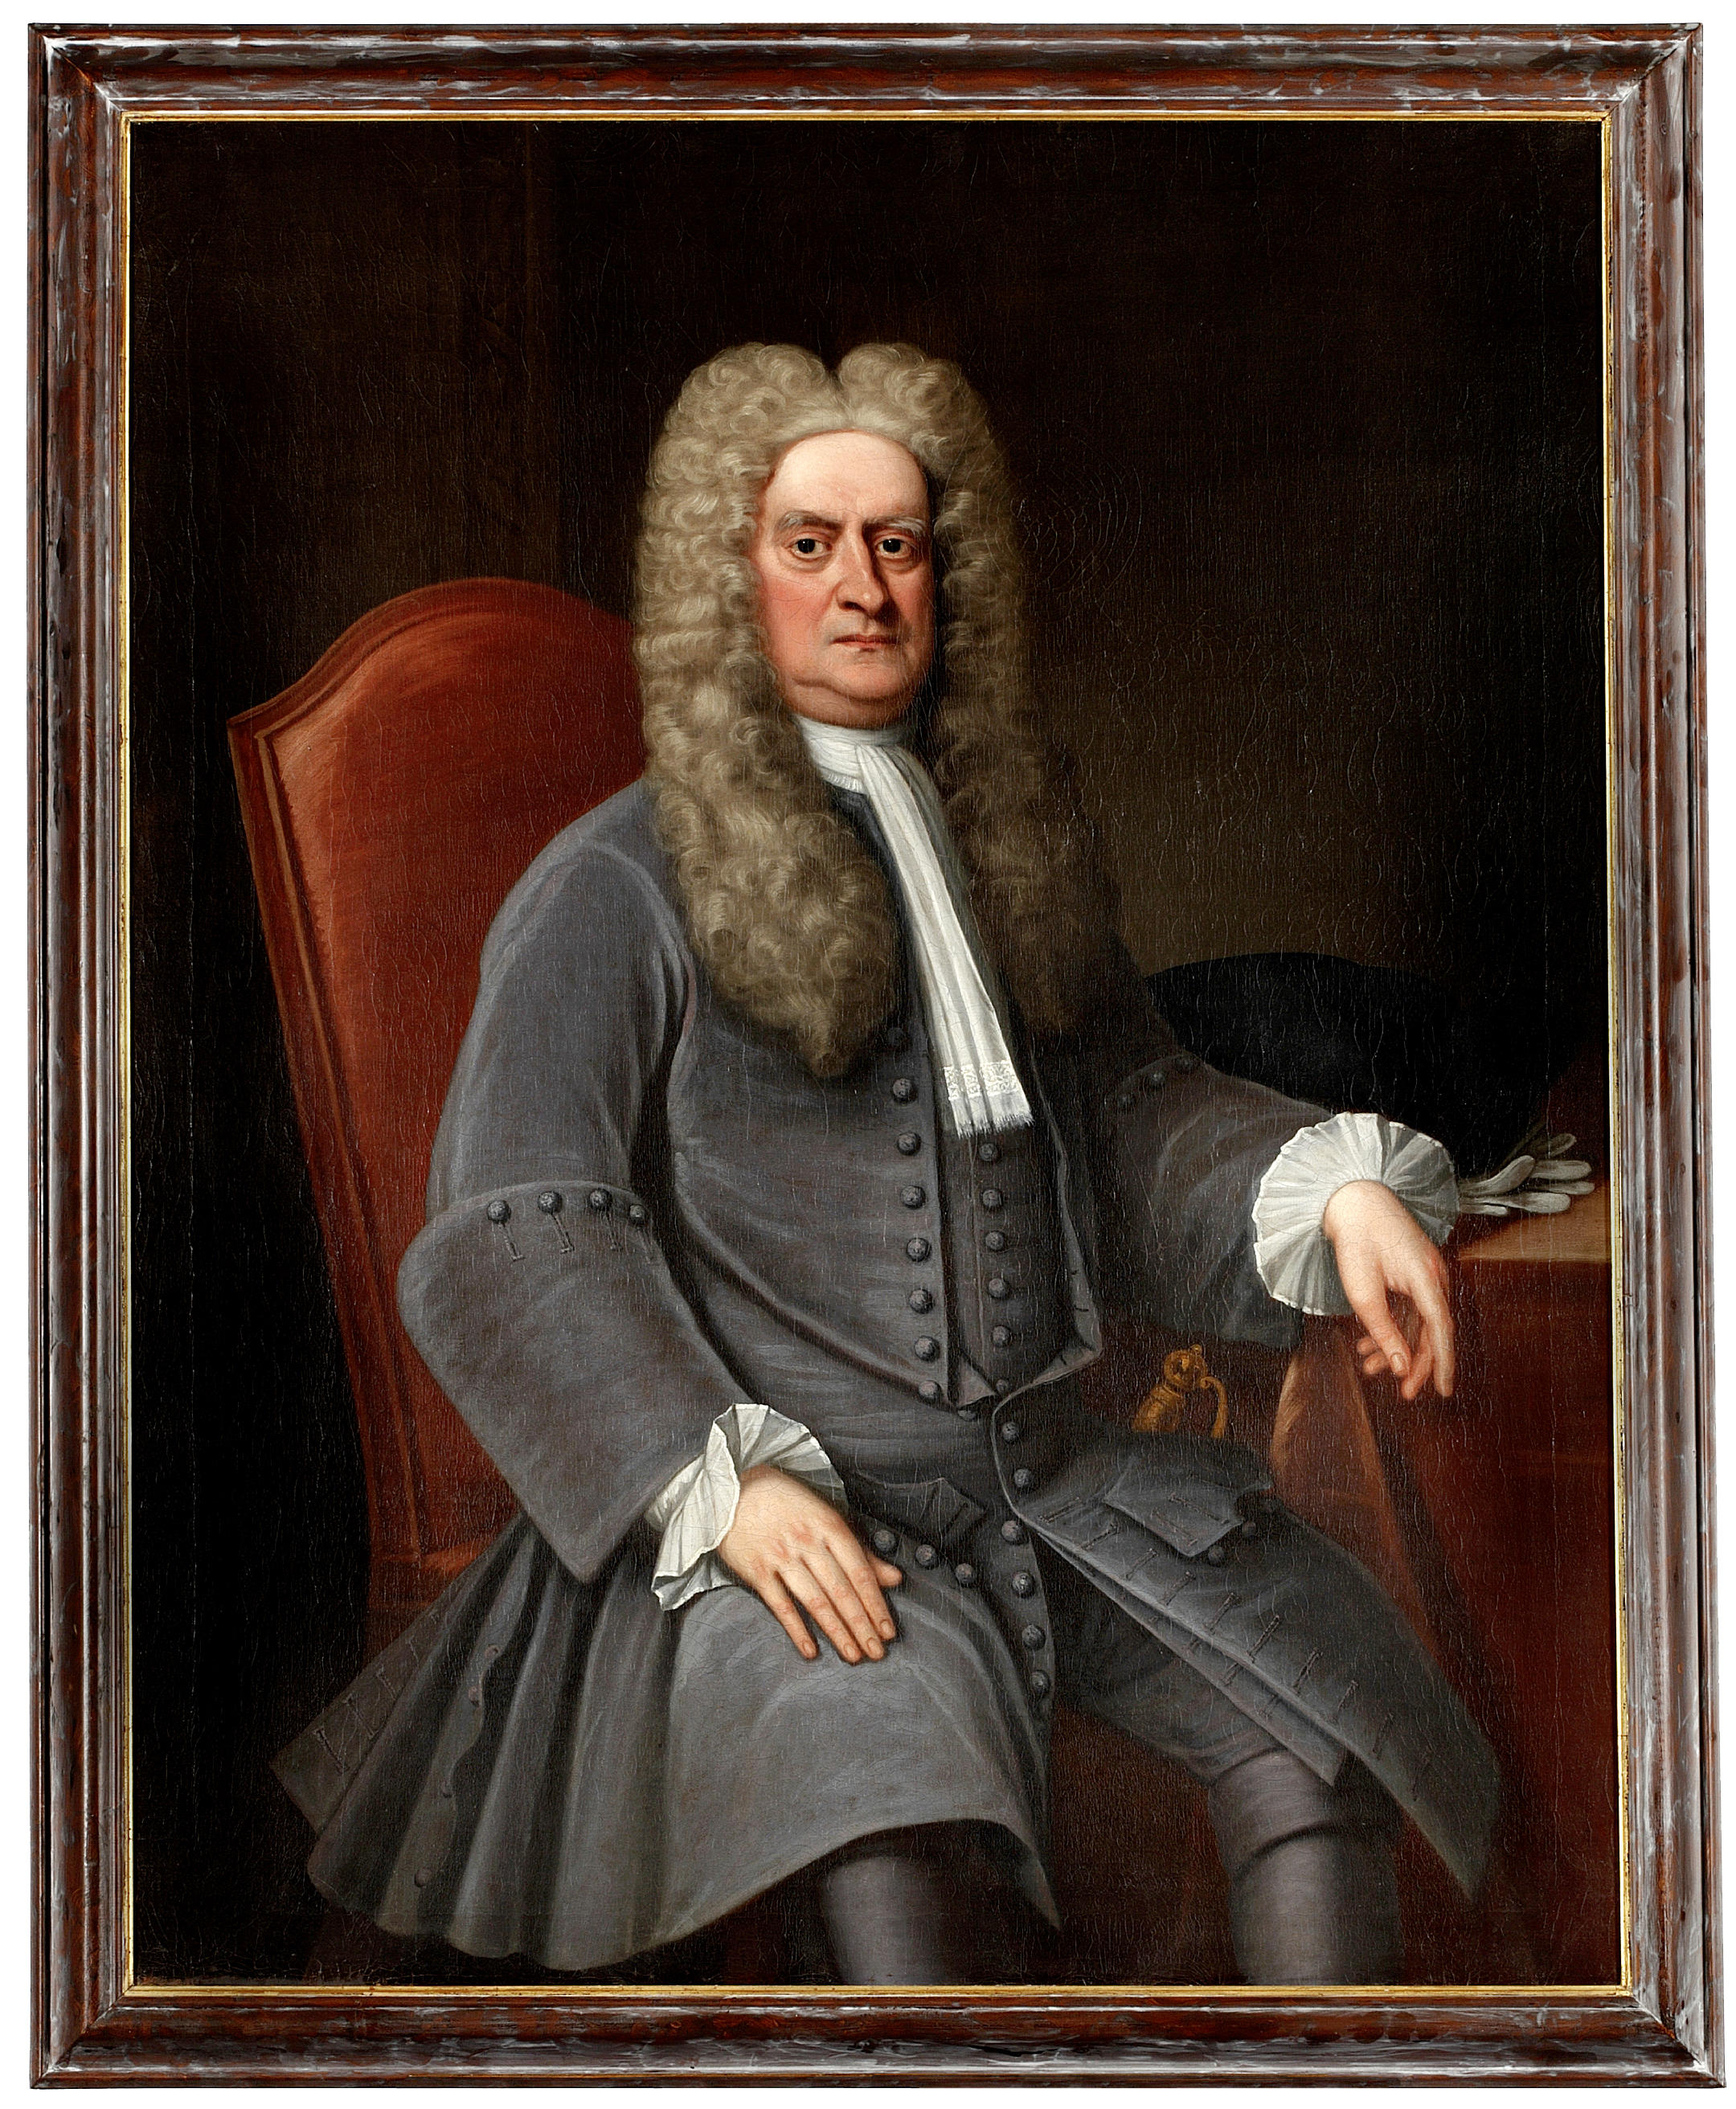 How Israel S National Library Acquired Sir Isaac Newton S